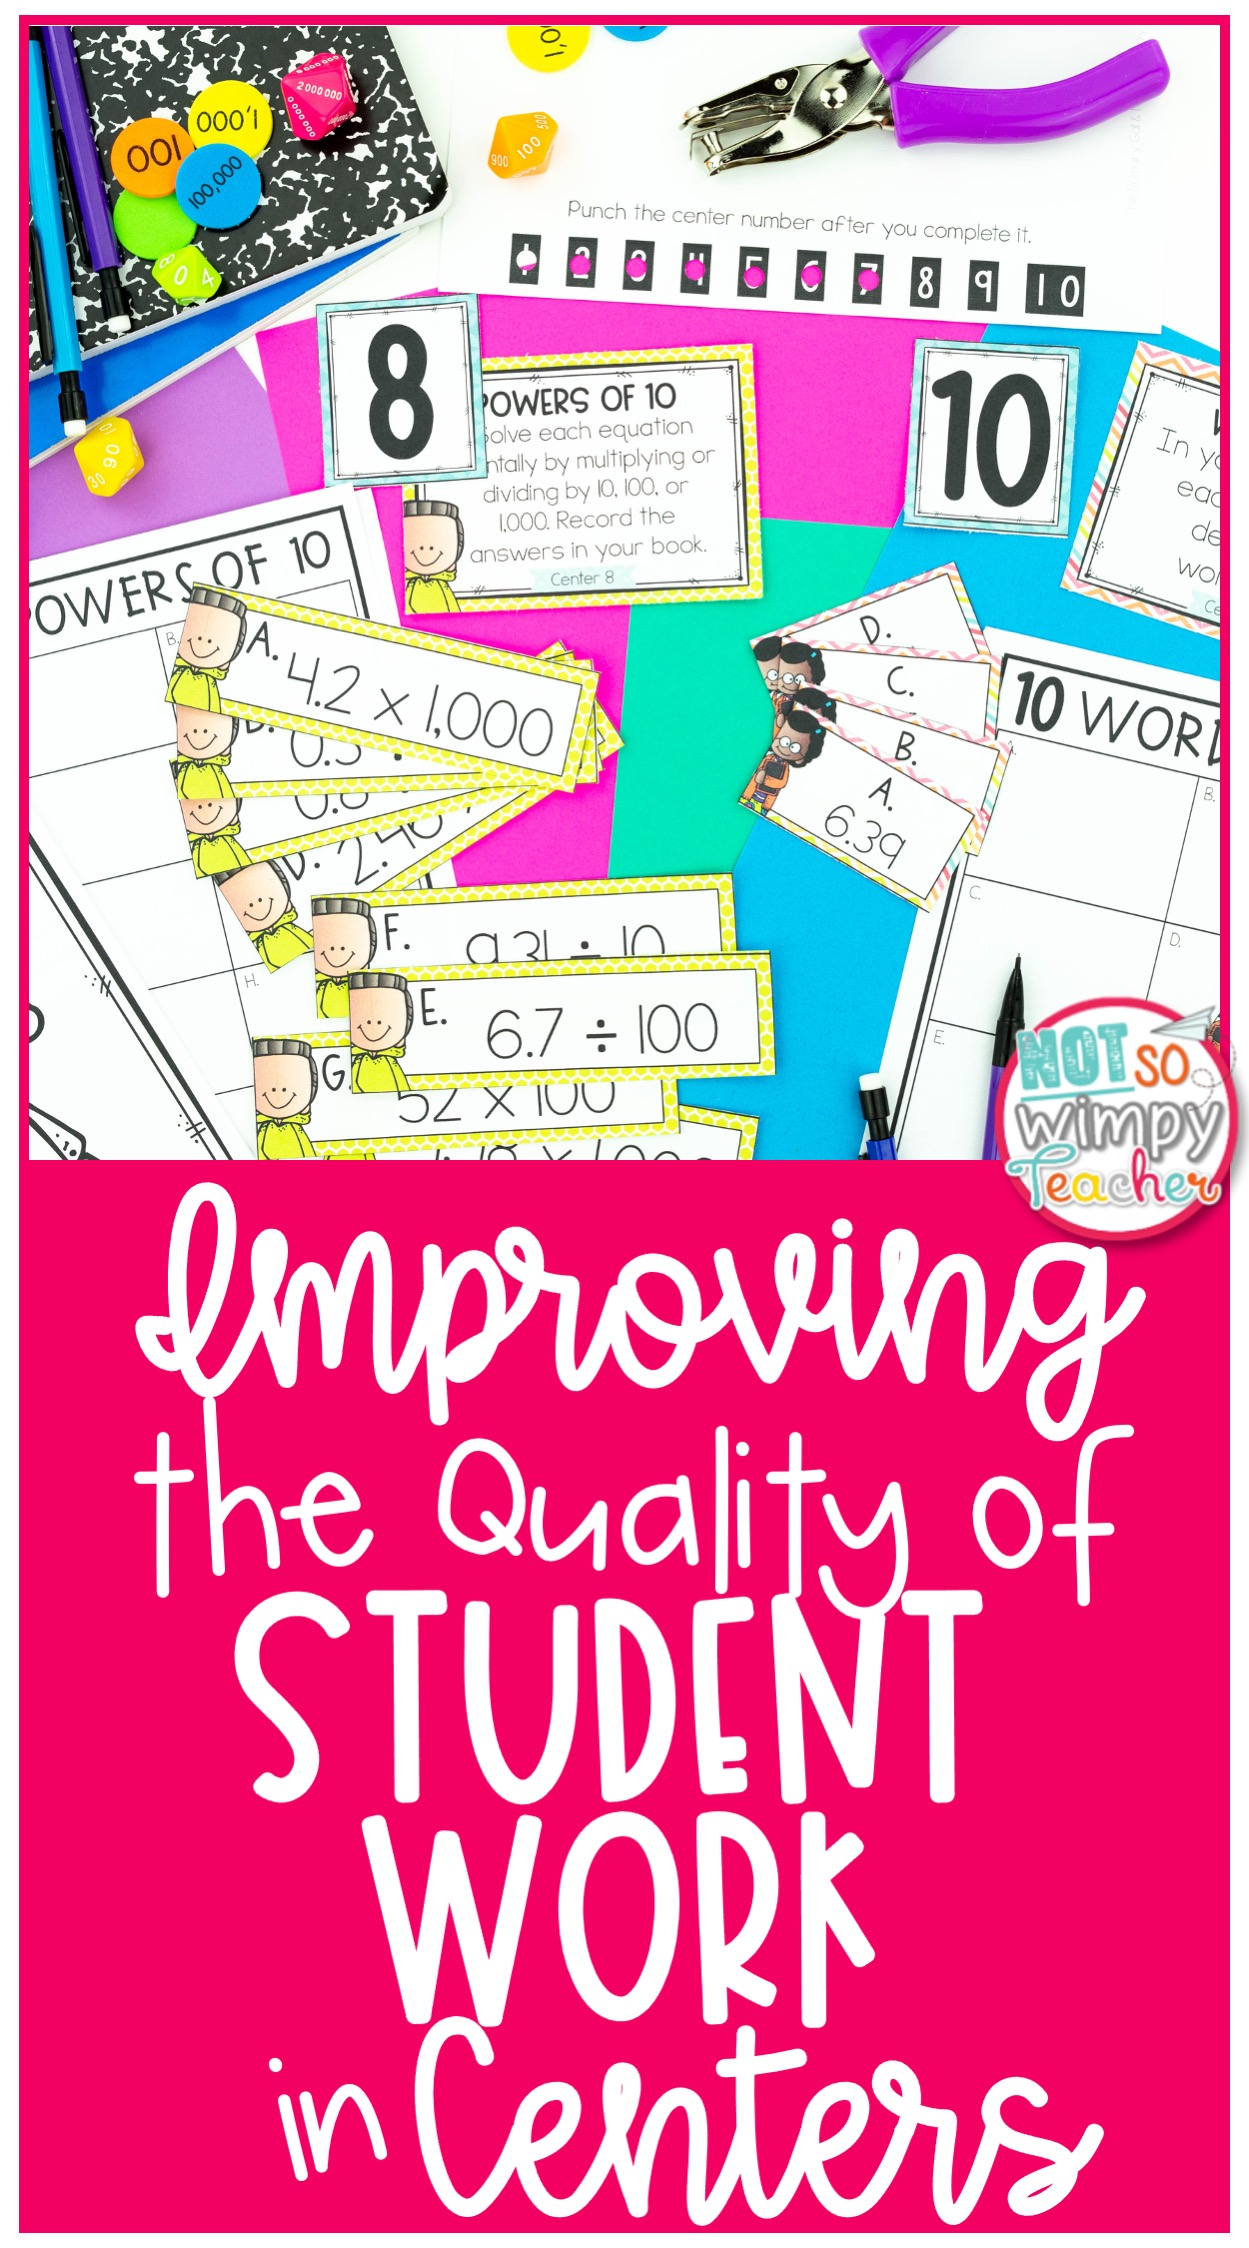 Pin featuring images of math center supplies for Improving the Quality of Student Work in Centers